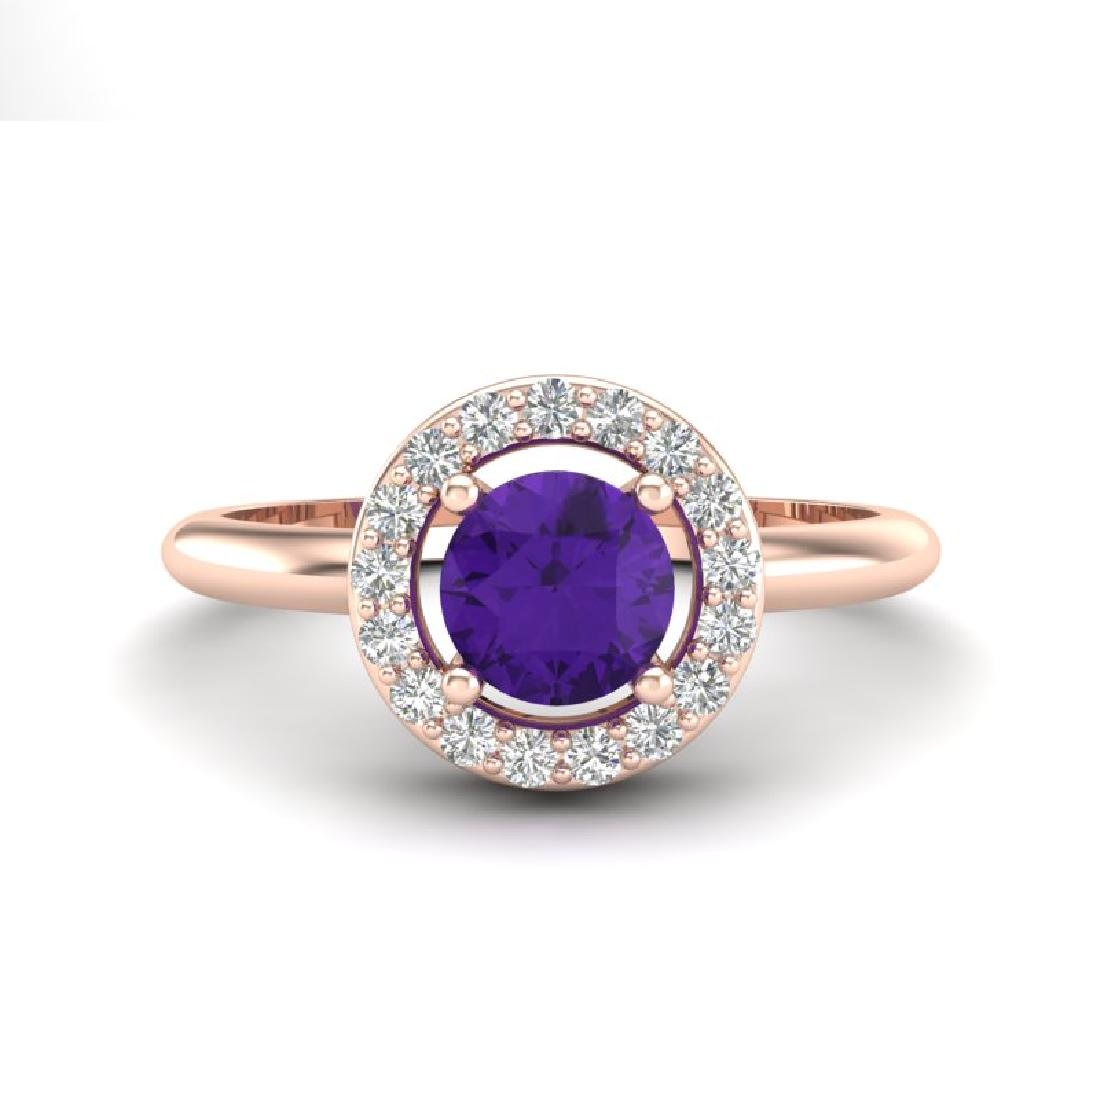 0.75 CTW Amethyst & Micro Halo VS/SI Diamond Ring 14K